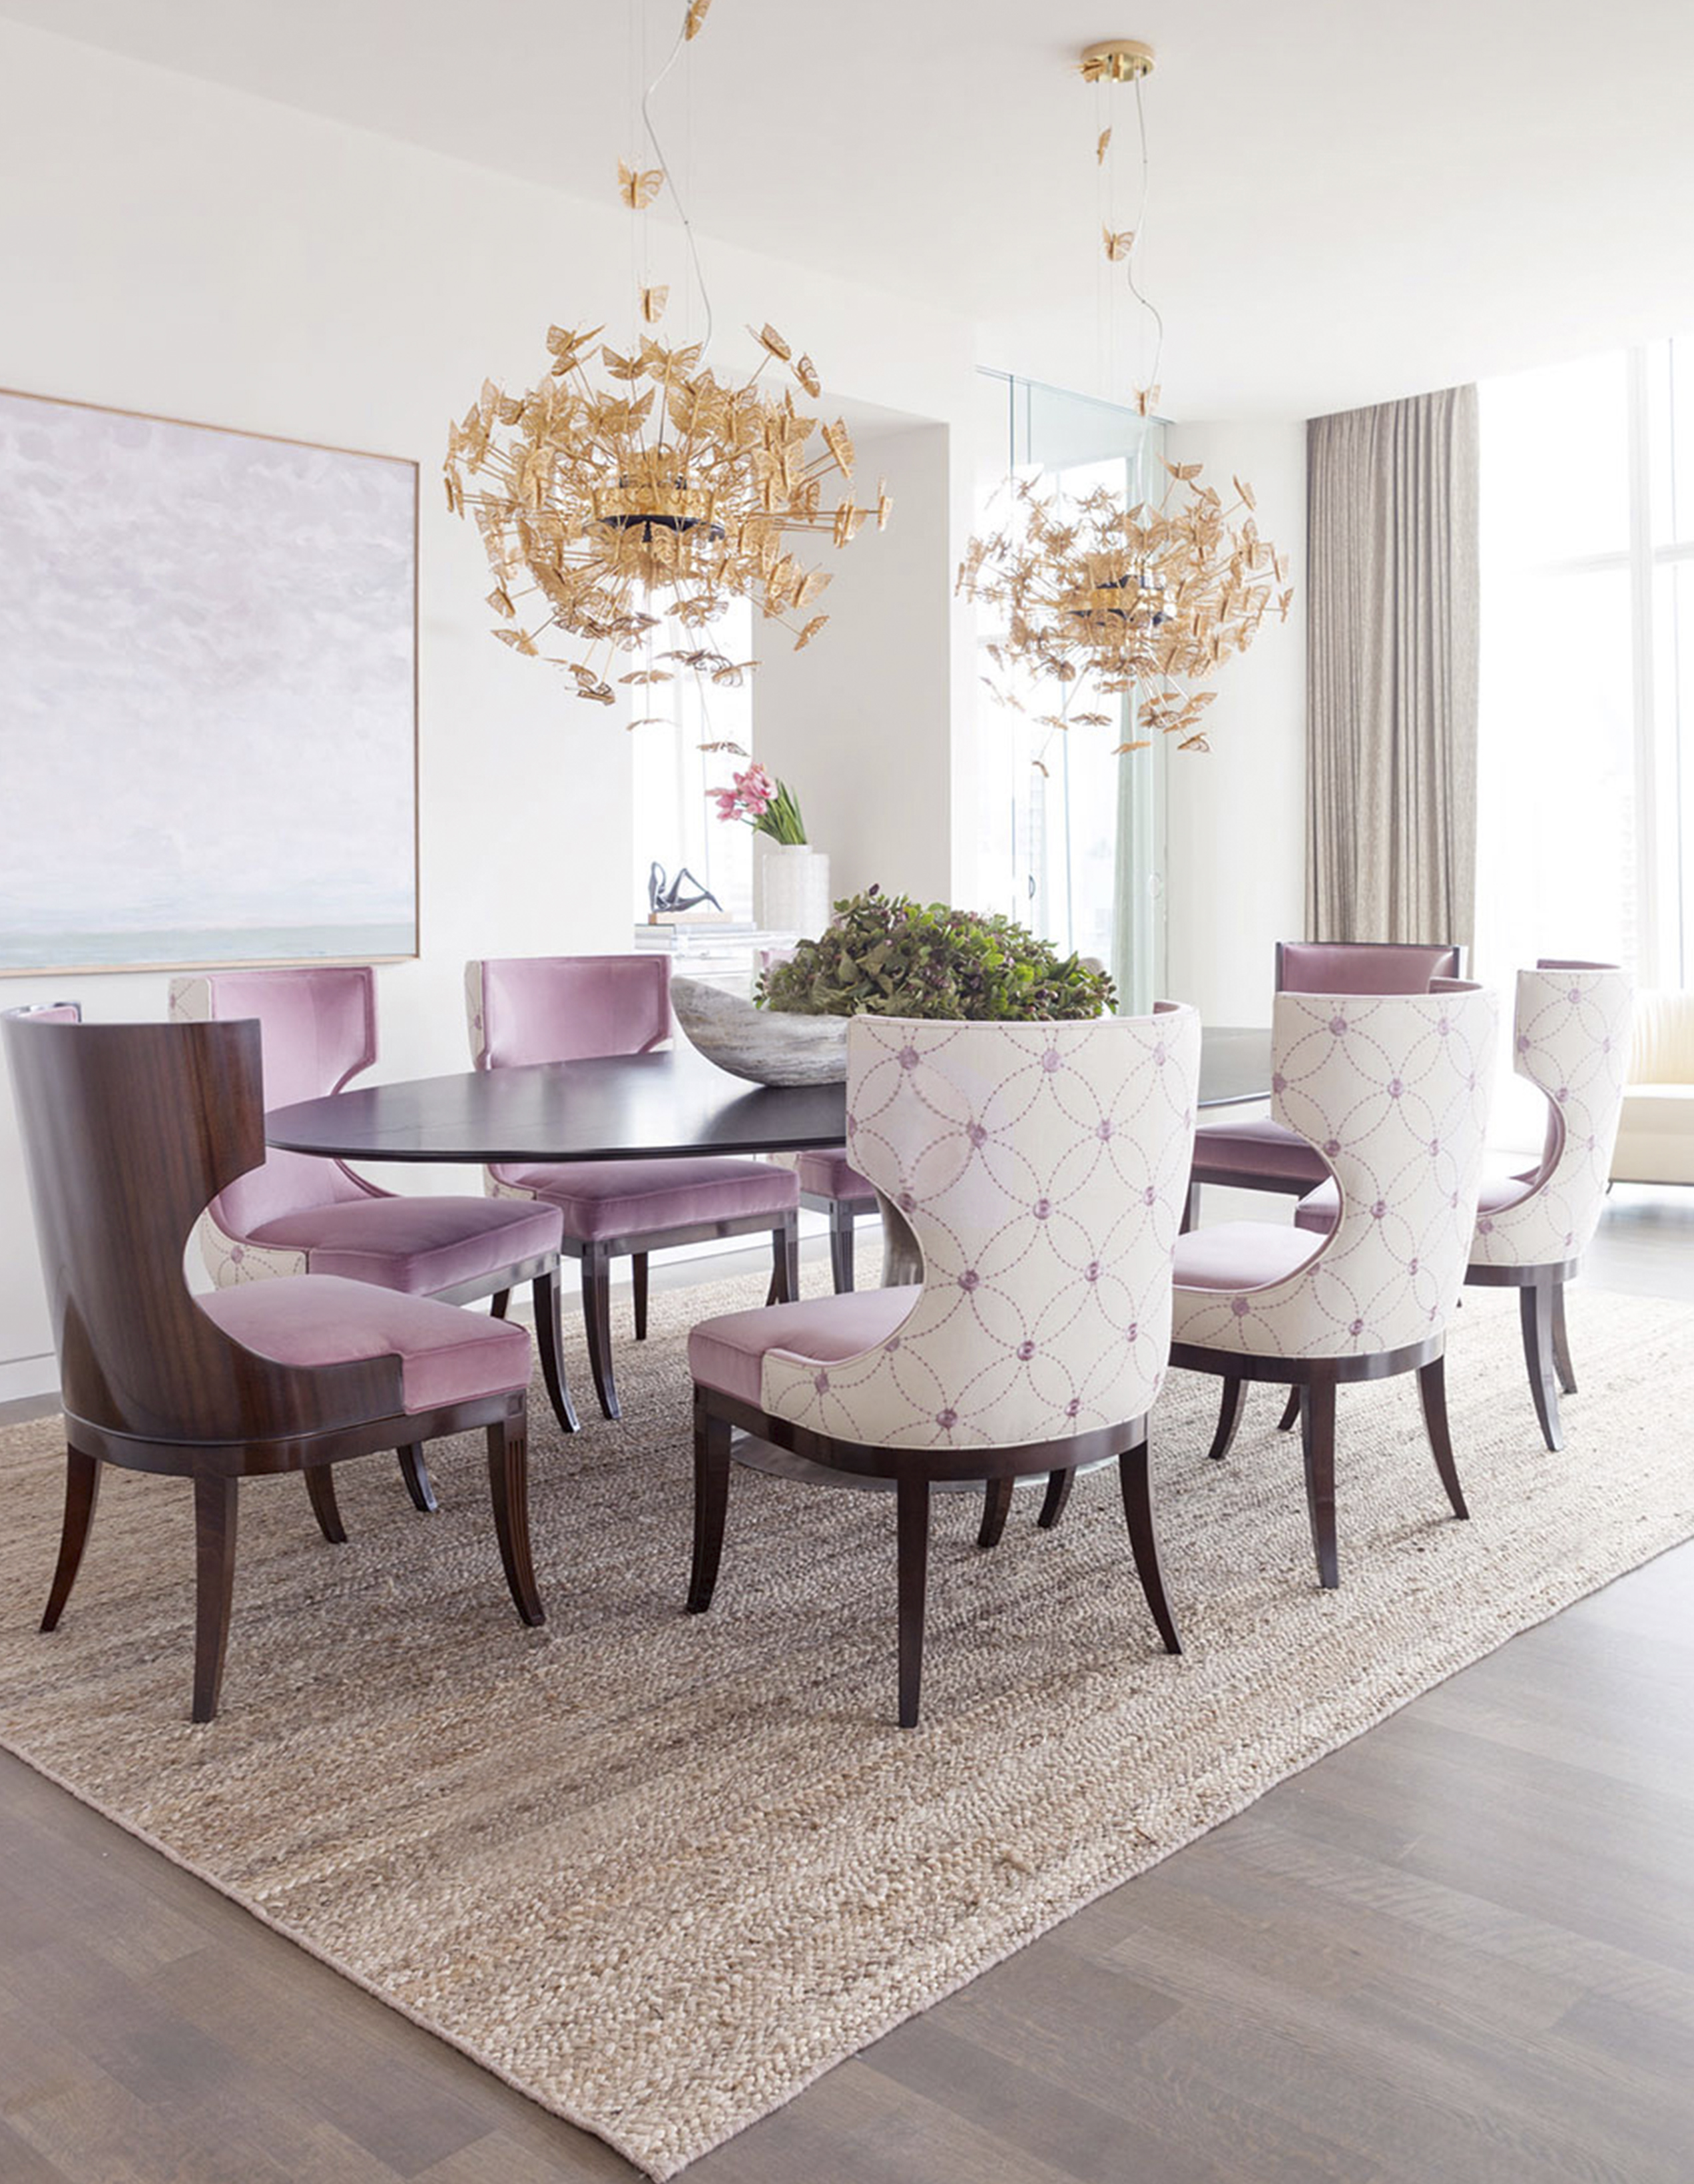 Take a Look at the Best Furniture Pieces for your Dining Room Design dining room design Take a Look at the Best Furniture Pieces for your Dining Room Design Take a Look at the Best Furniture Pieces for your Dining Room Design